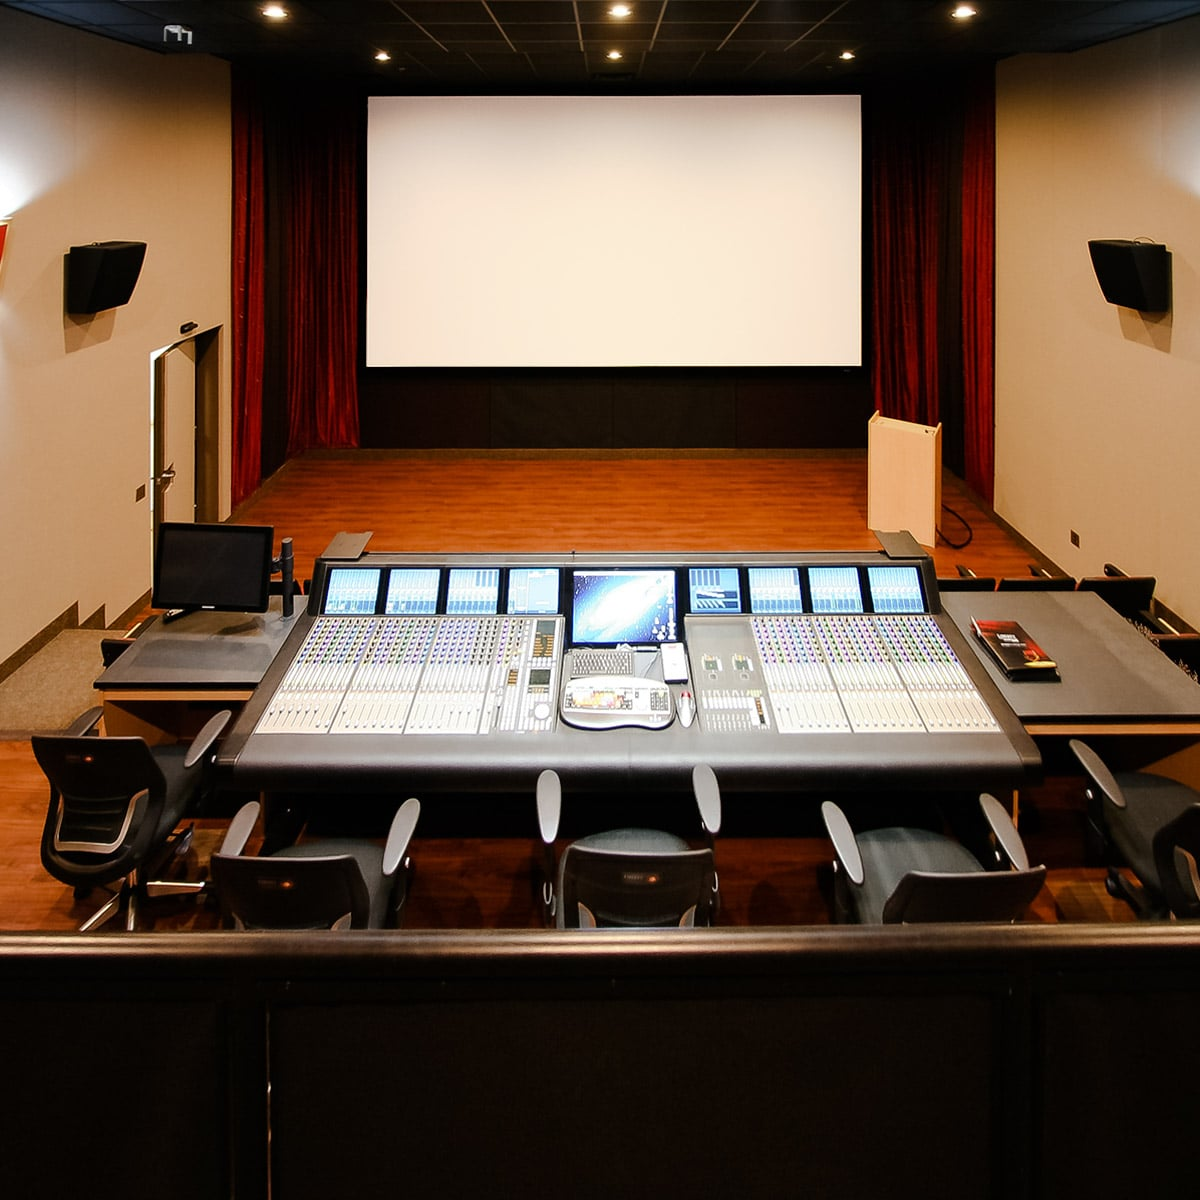 ... Liberty University Mixing Room Using Stretch Wall System For Side Wall  Acoustics And Speaker Covers Under ...